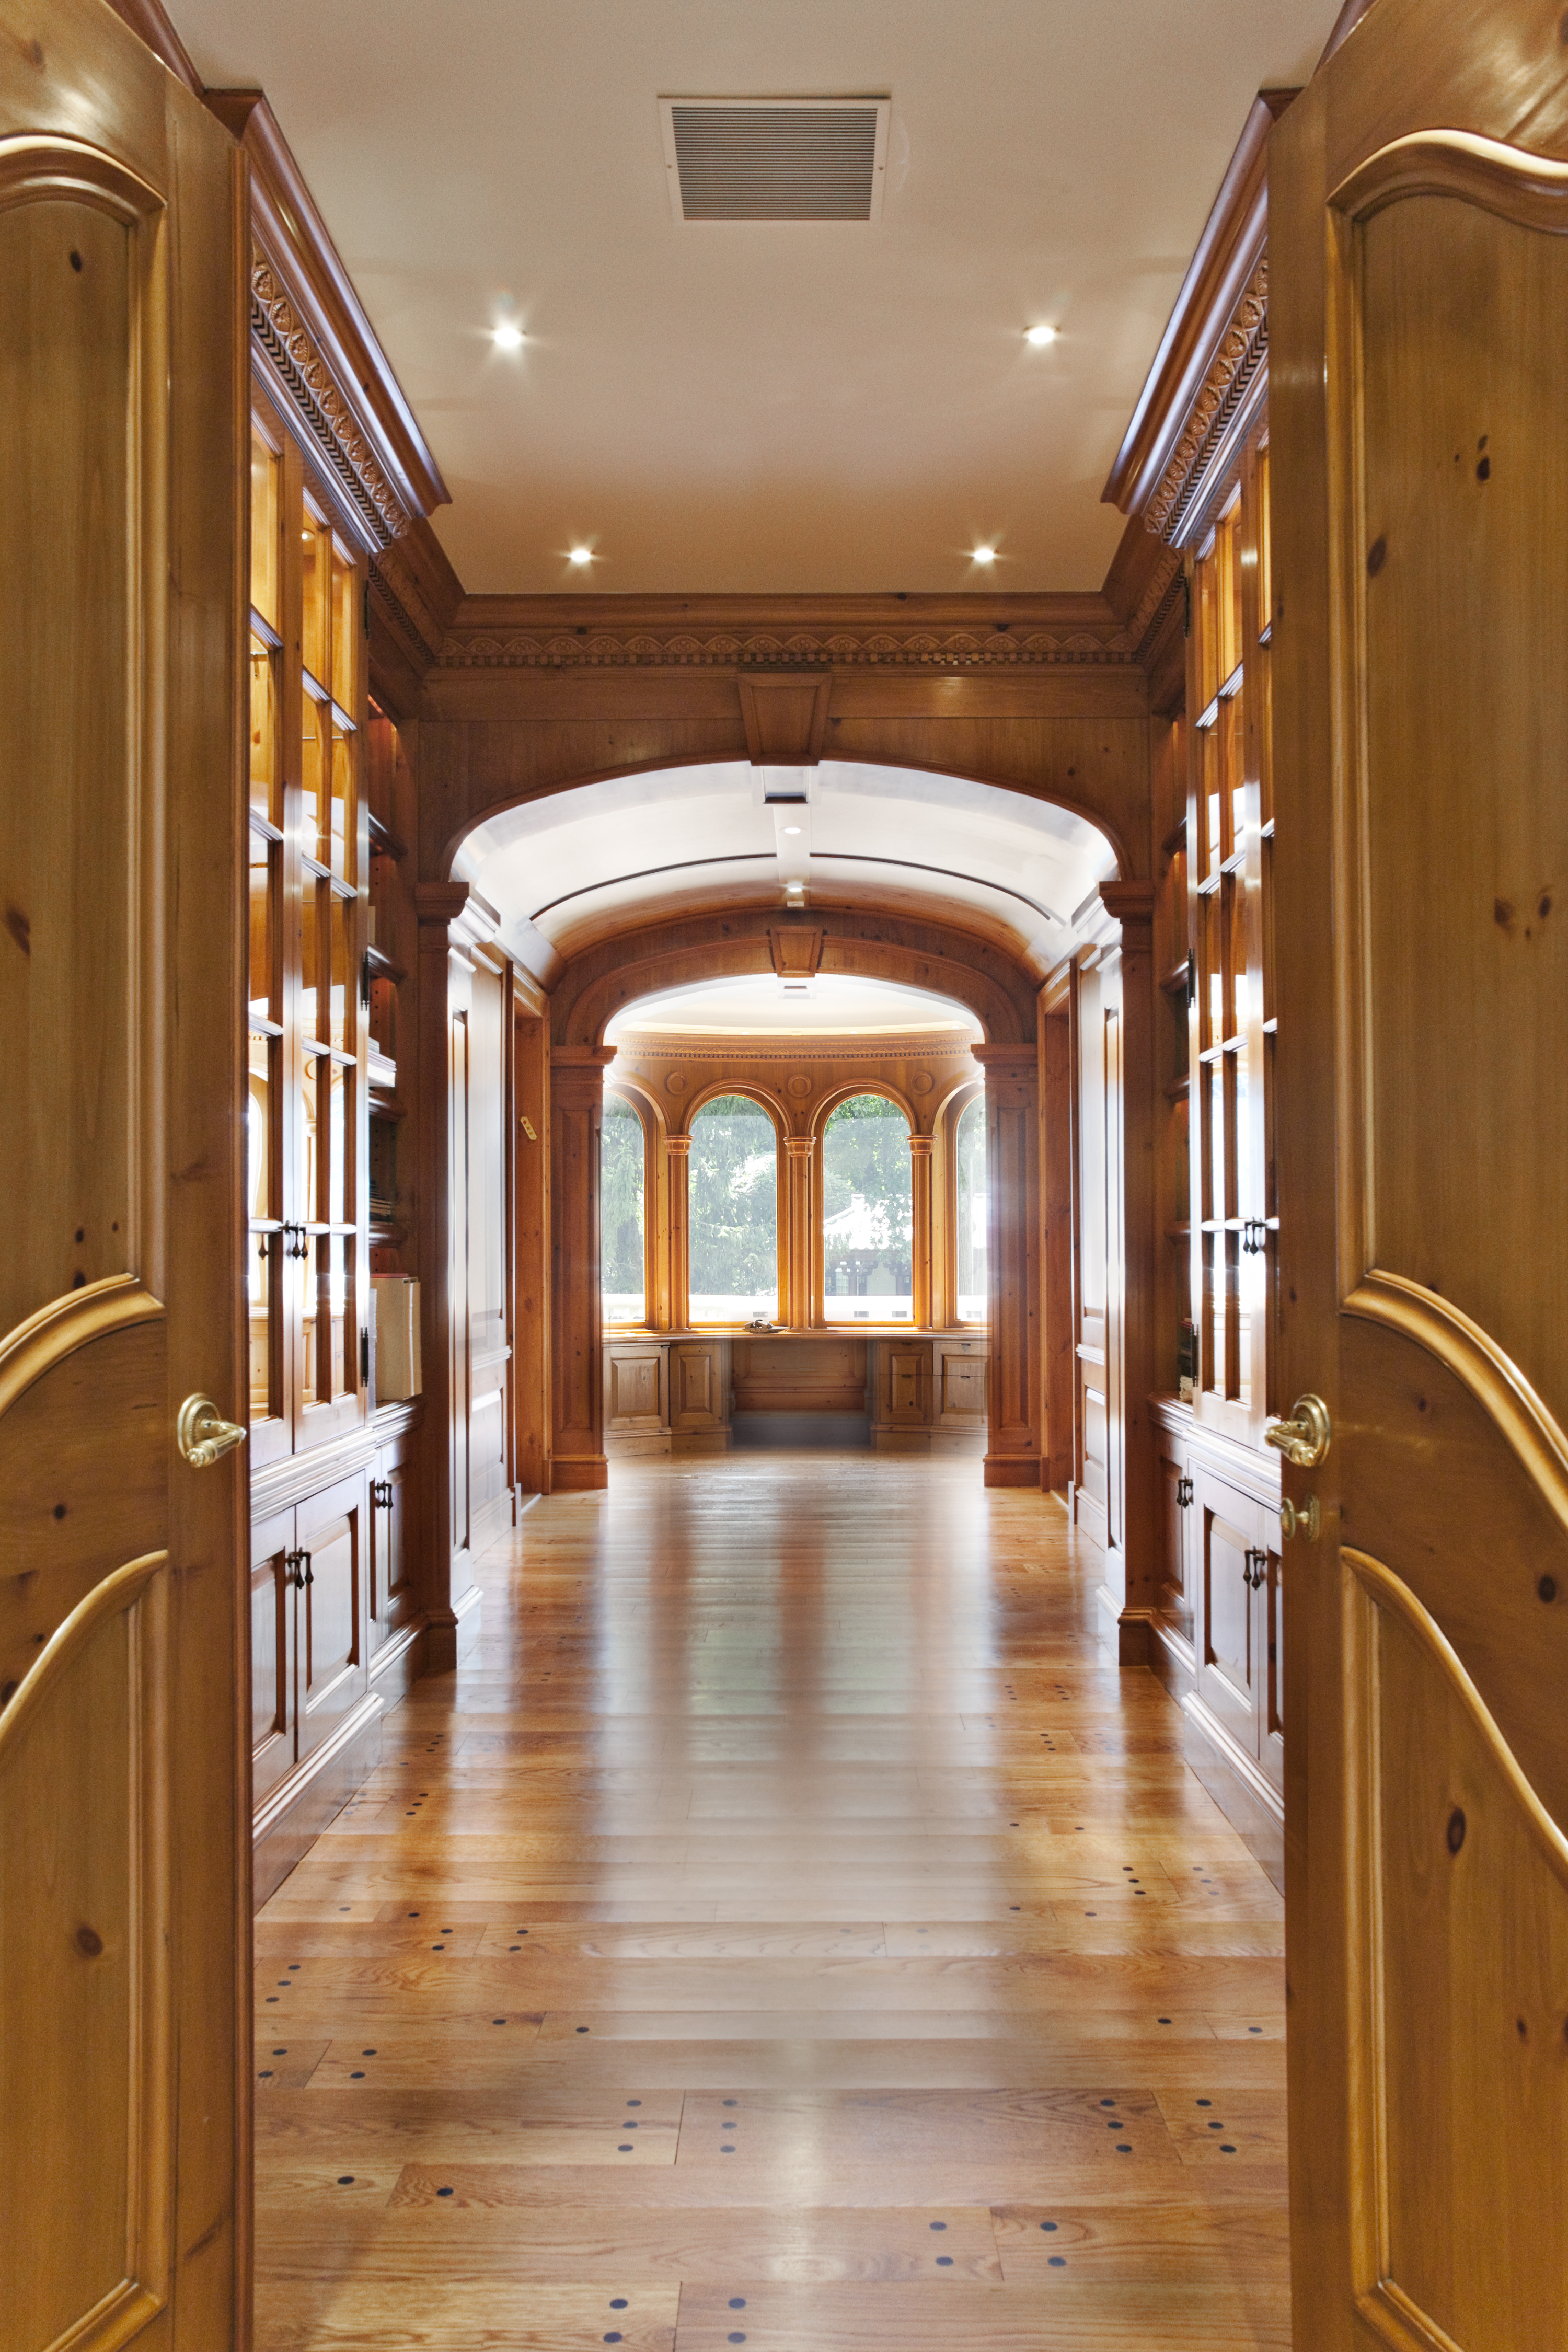 Millwork Details of Great Hall